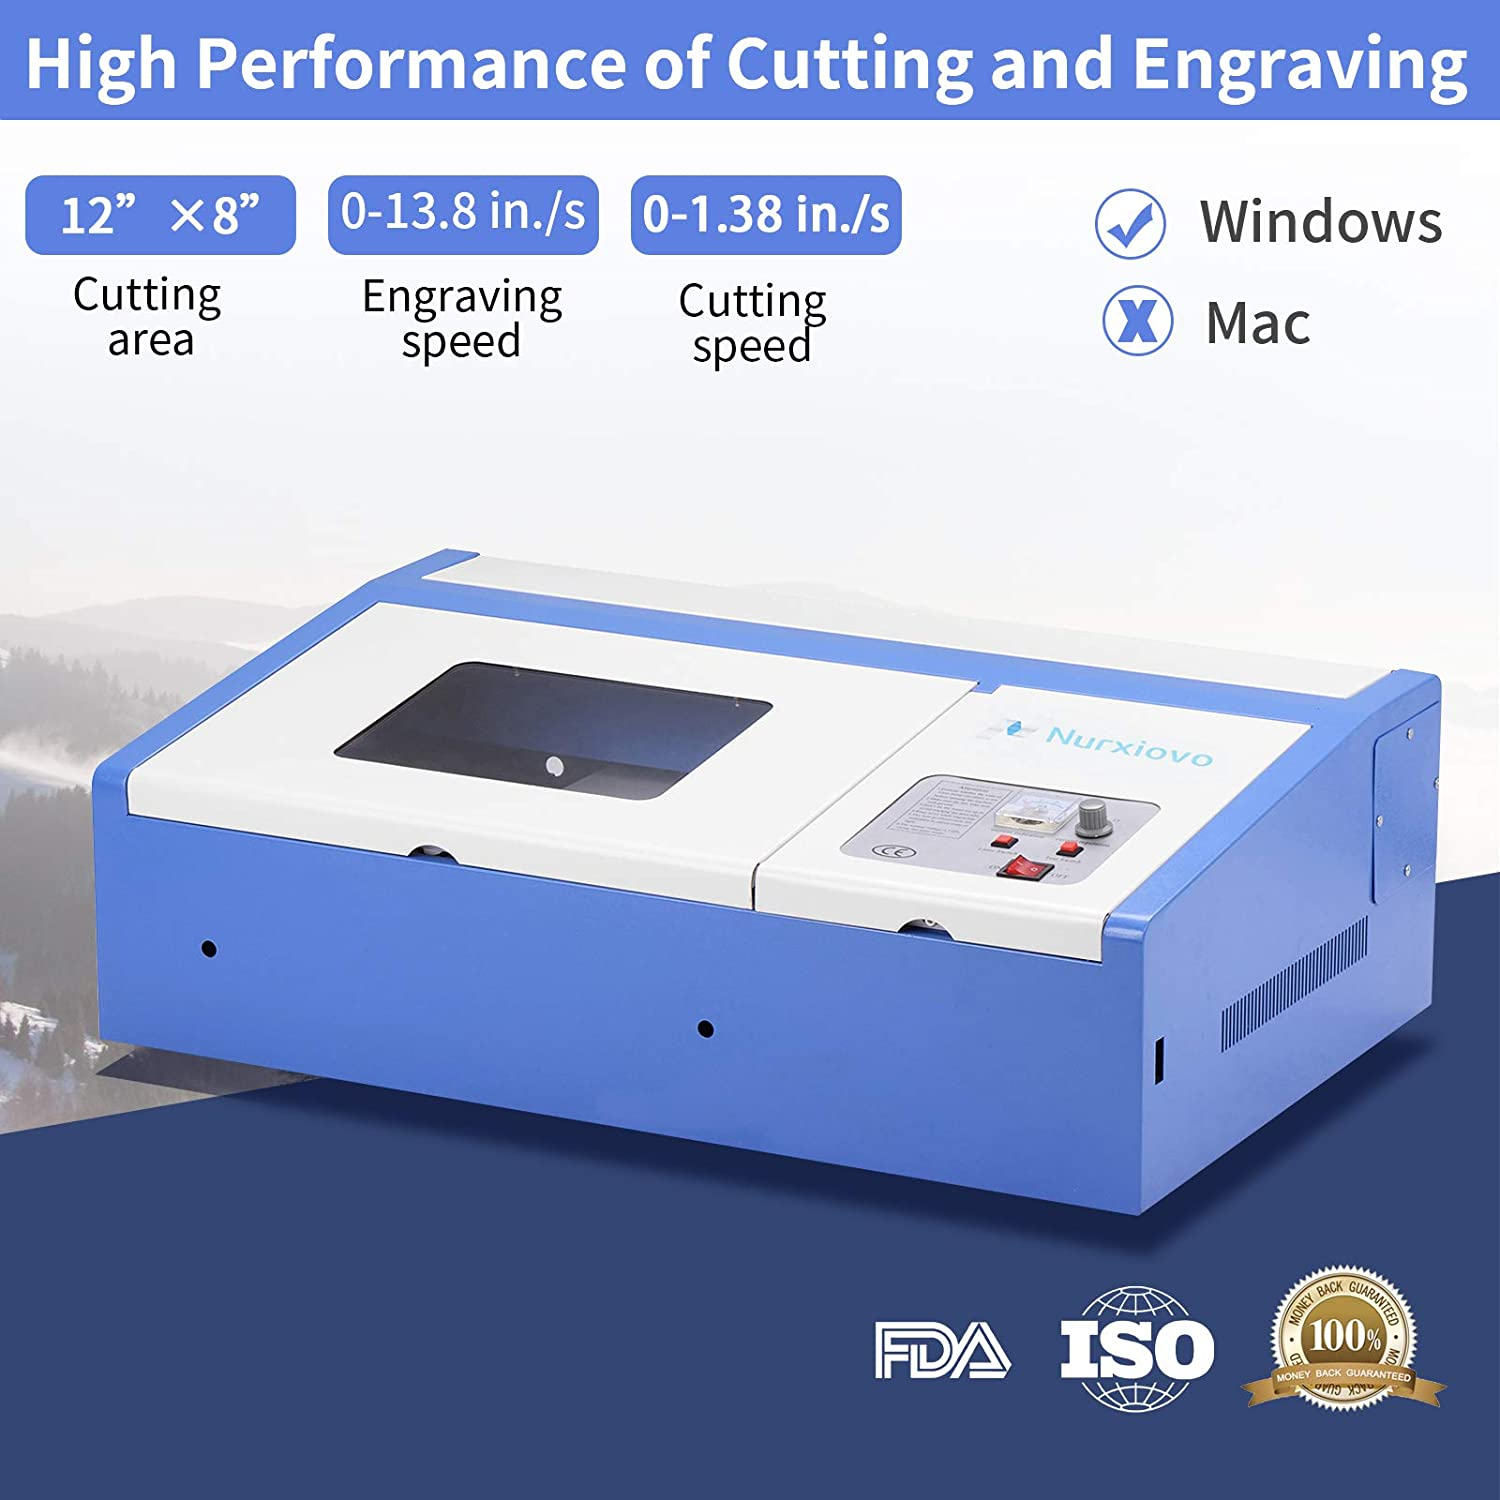 Laser Cutter-SUNCOO K40 Laser Engraver DIY Engraving Machine for Wood, Glass, Acrylic 40W CO2 with Air Exhaust Fan USB Port Only for Windows System ...